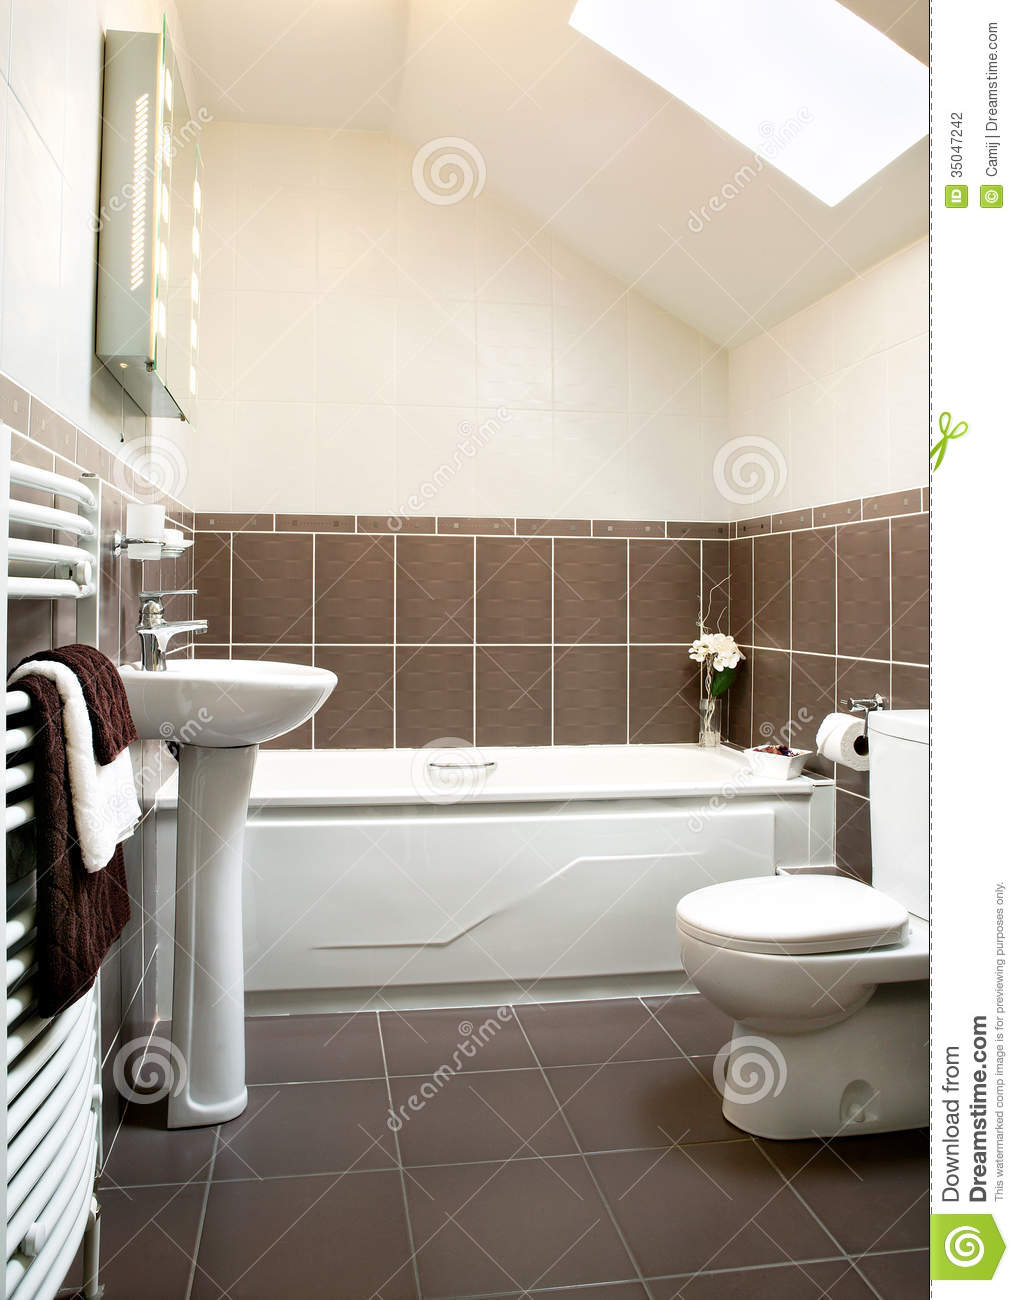 Tiled Bathroom Stock Photography Image 35047242